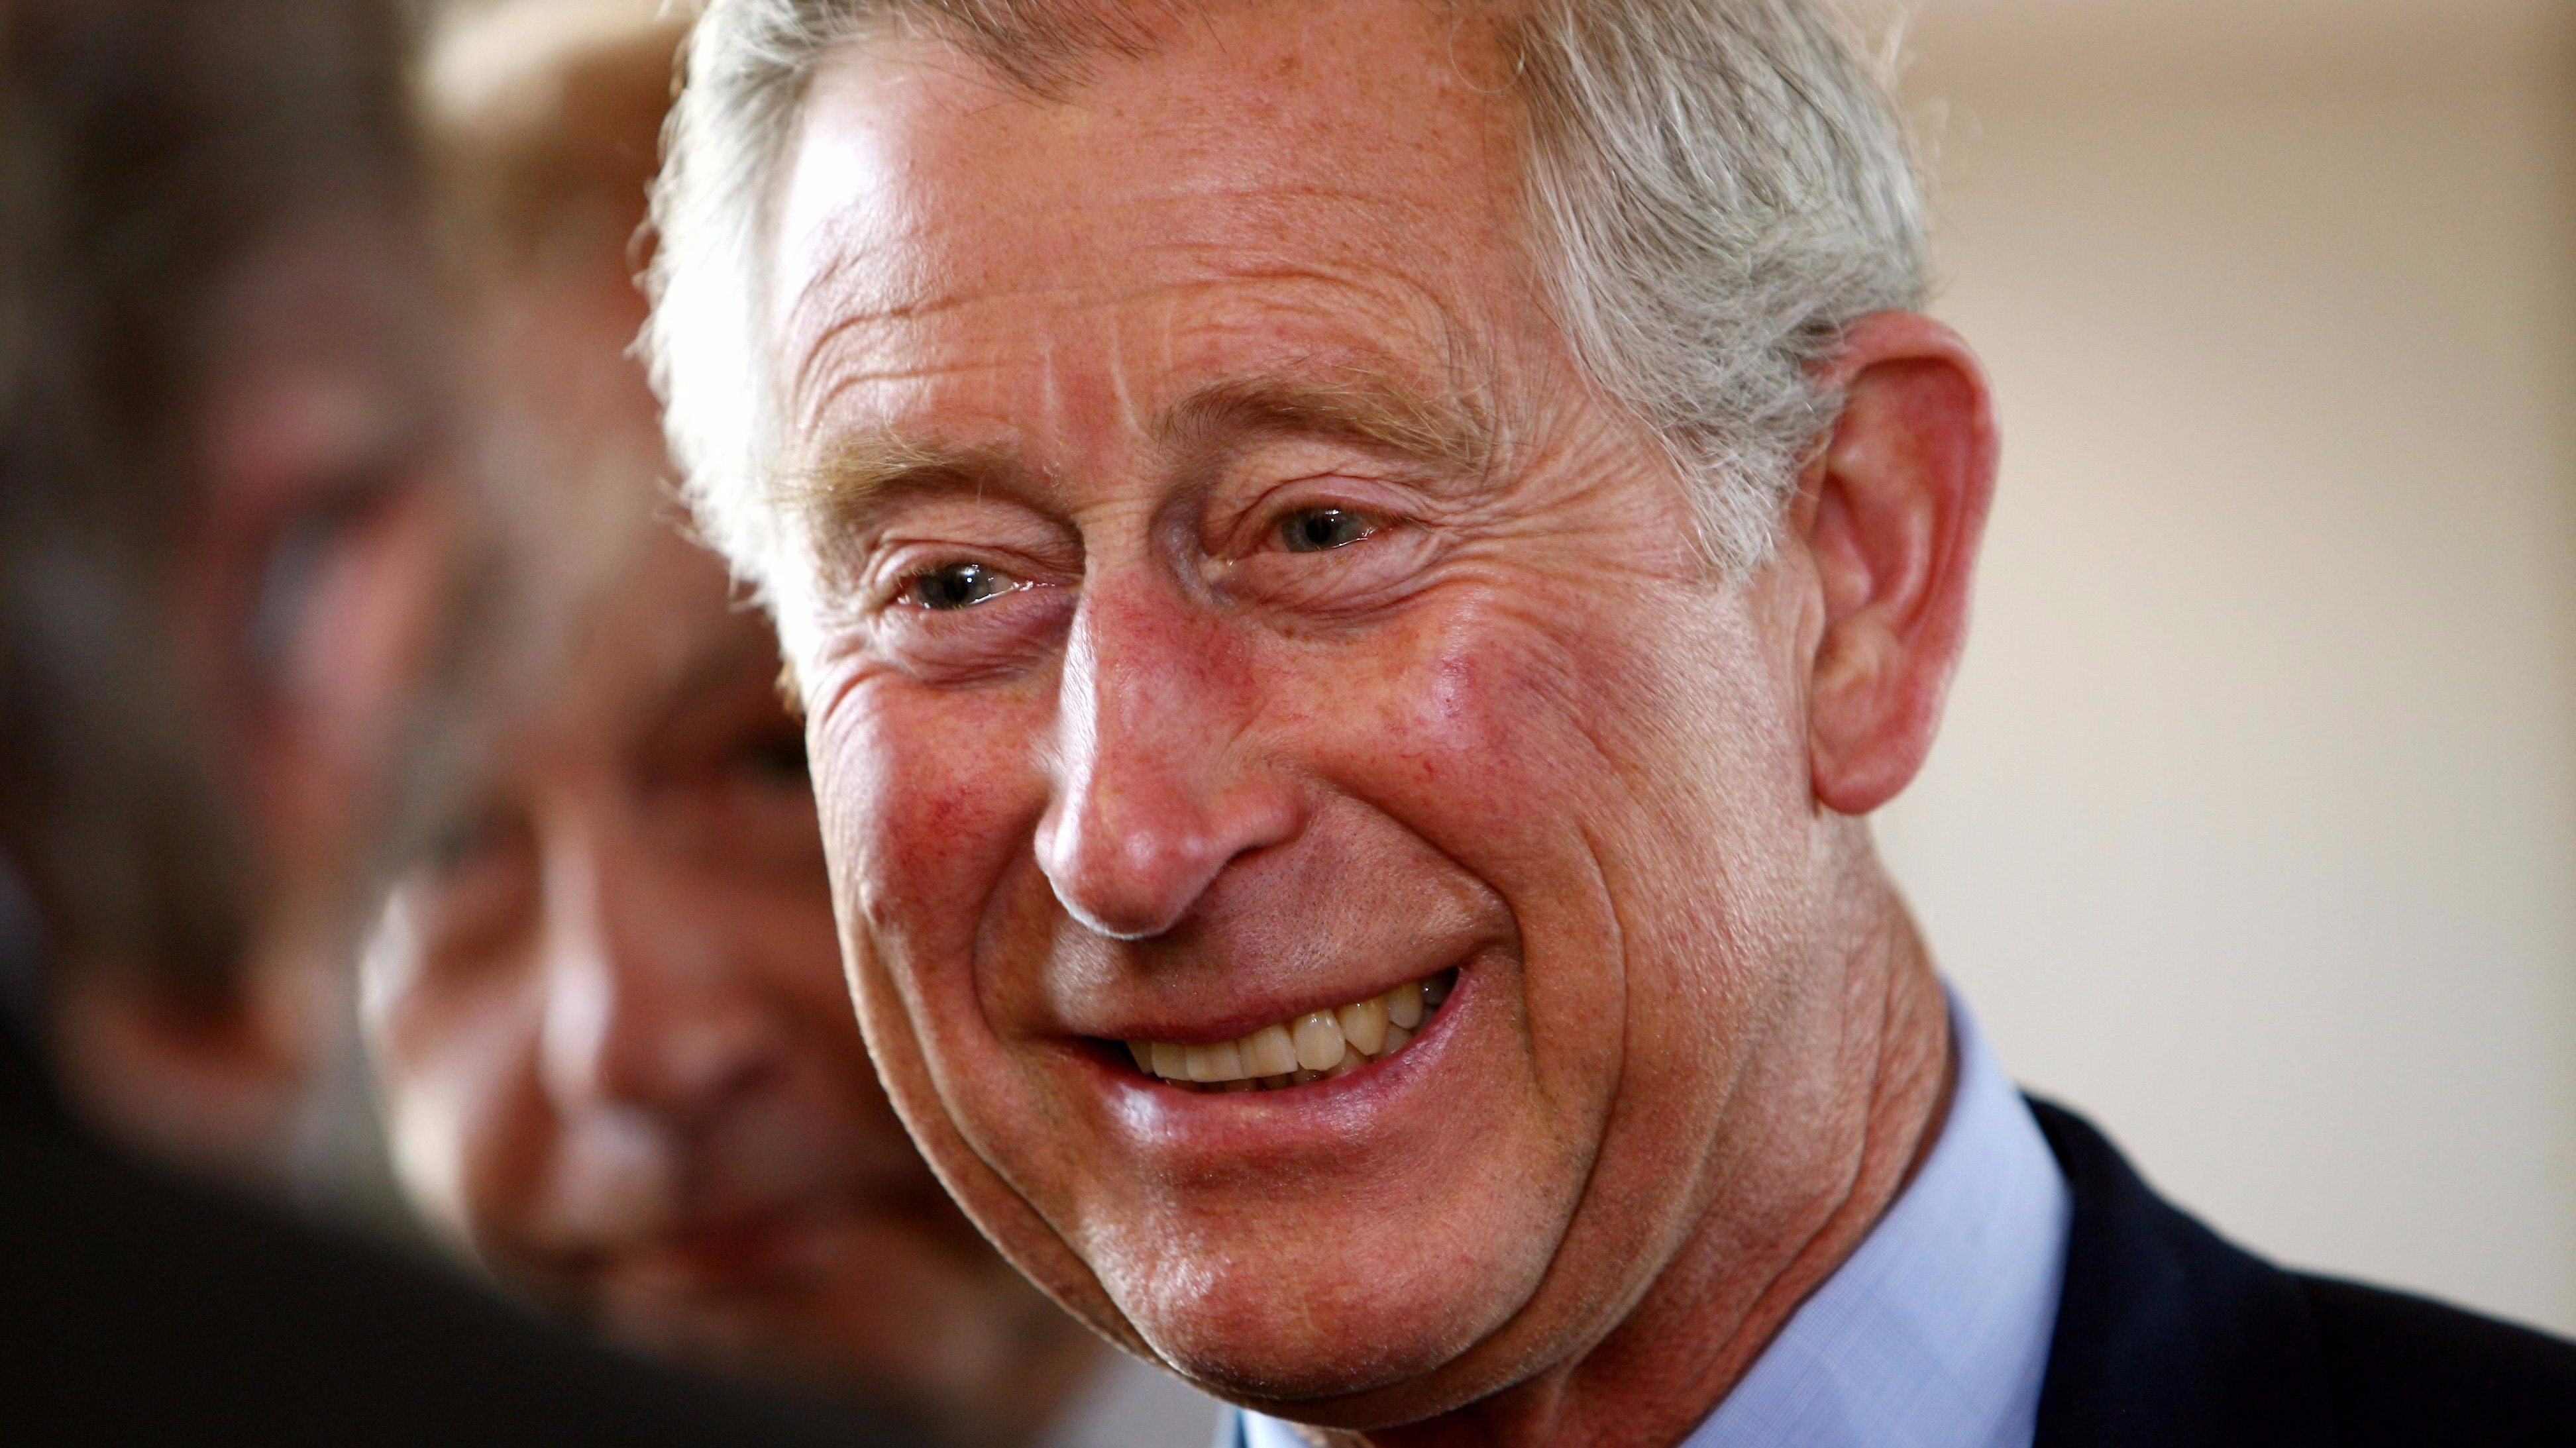 Prince Charles Widescreen